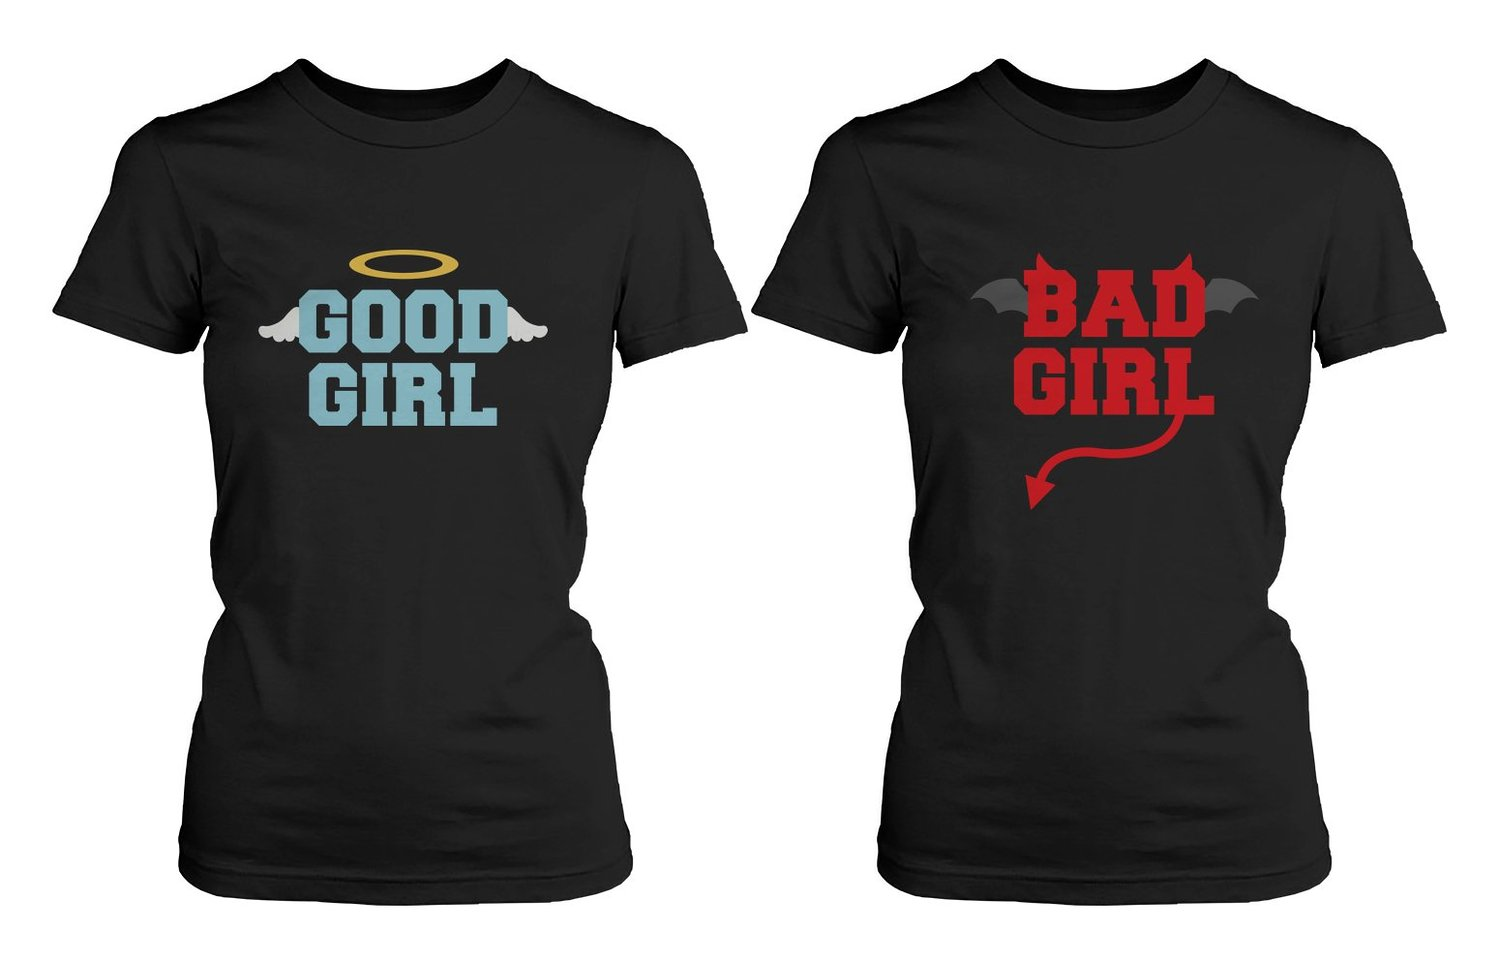 Amazon.com: BFF Matching Shirts - Good Girl Bad Girl Best Friends: Clothing